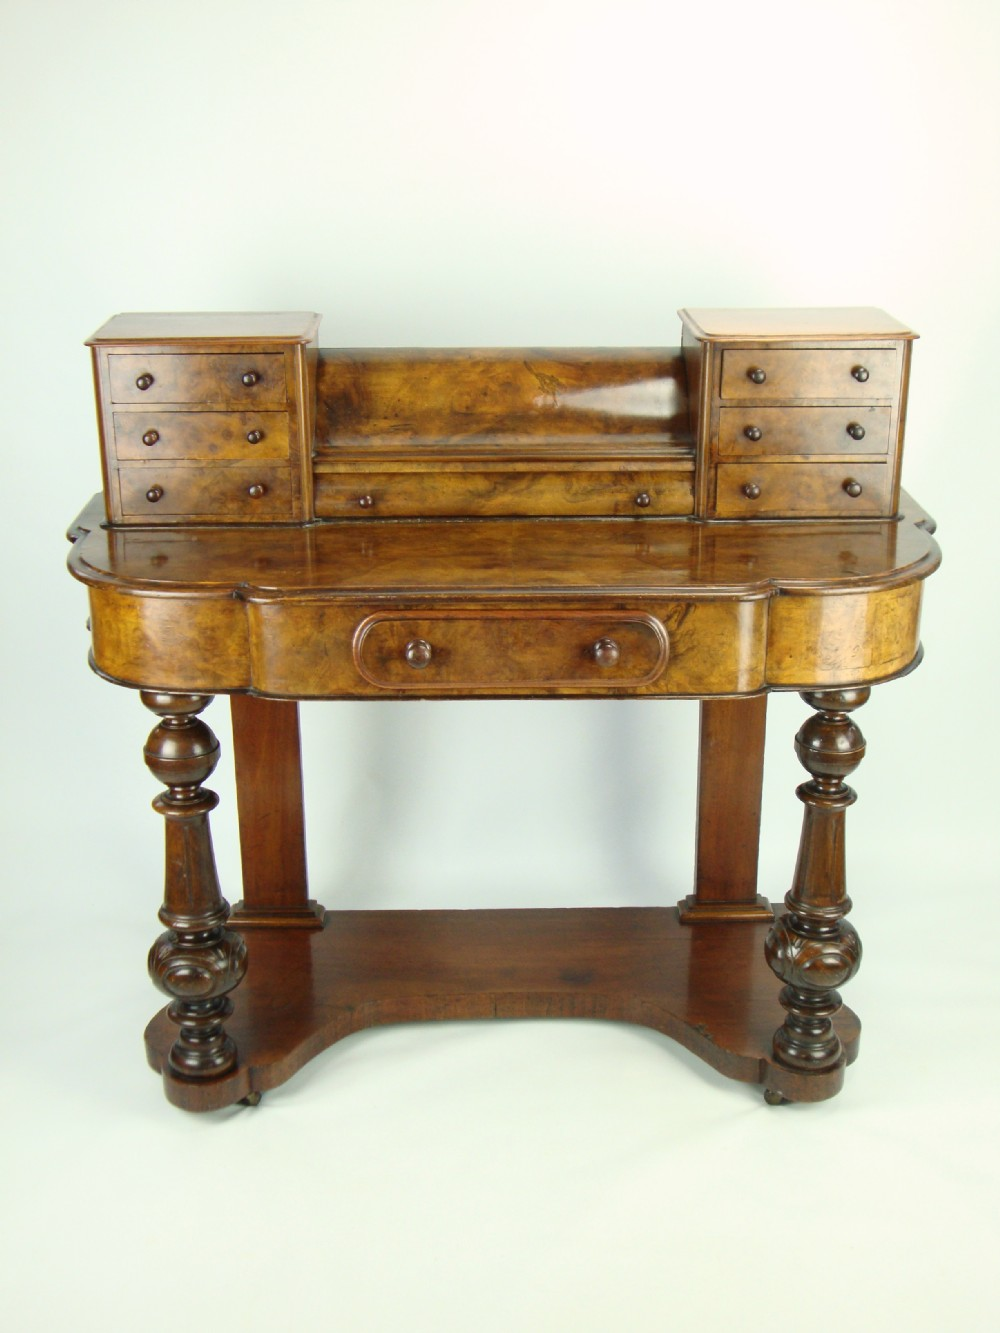 Victorian dressing table - Antique Victorian Burr Walnut Duchess Dressing Table